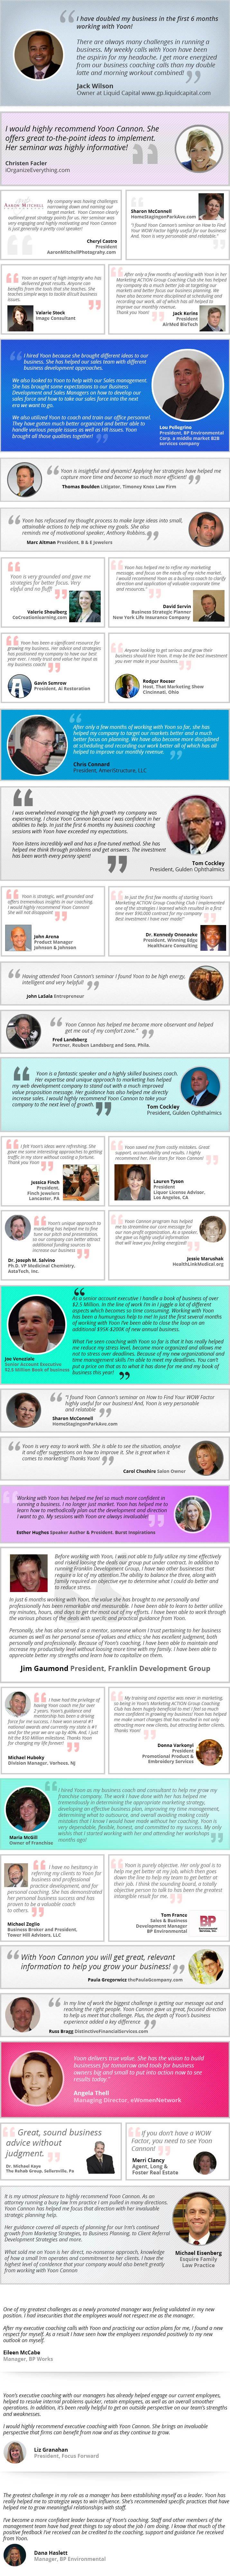 business coach testimonials for Yoon Cannon, top-rated business coaches